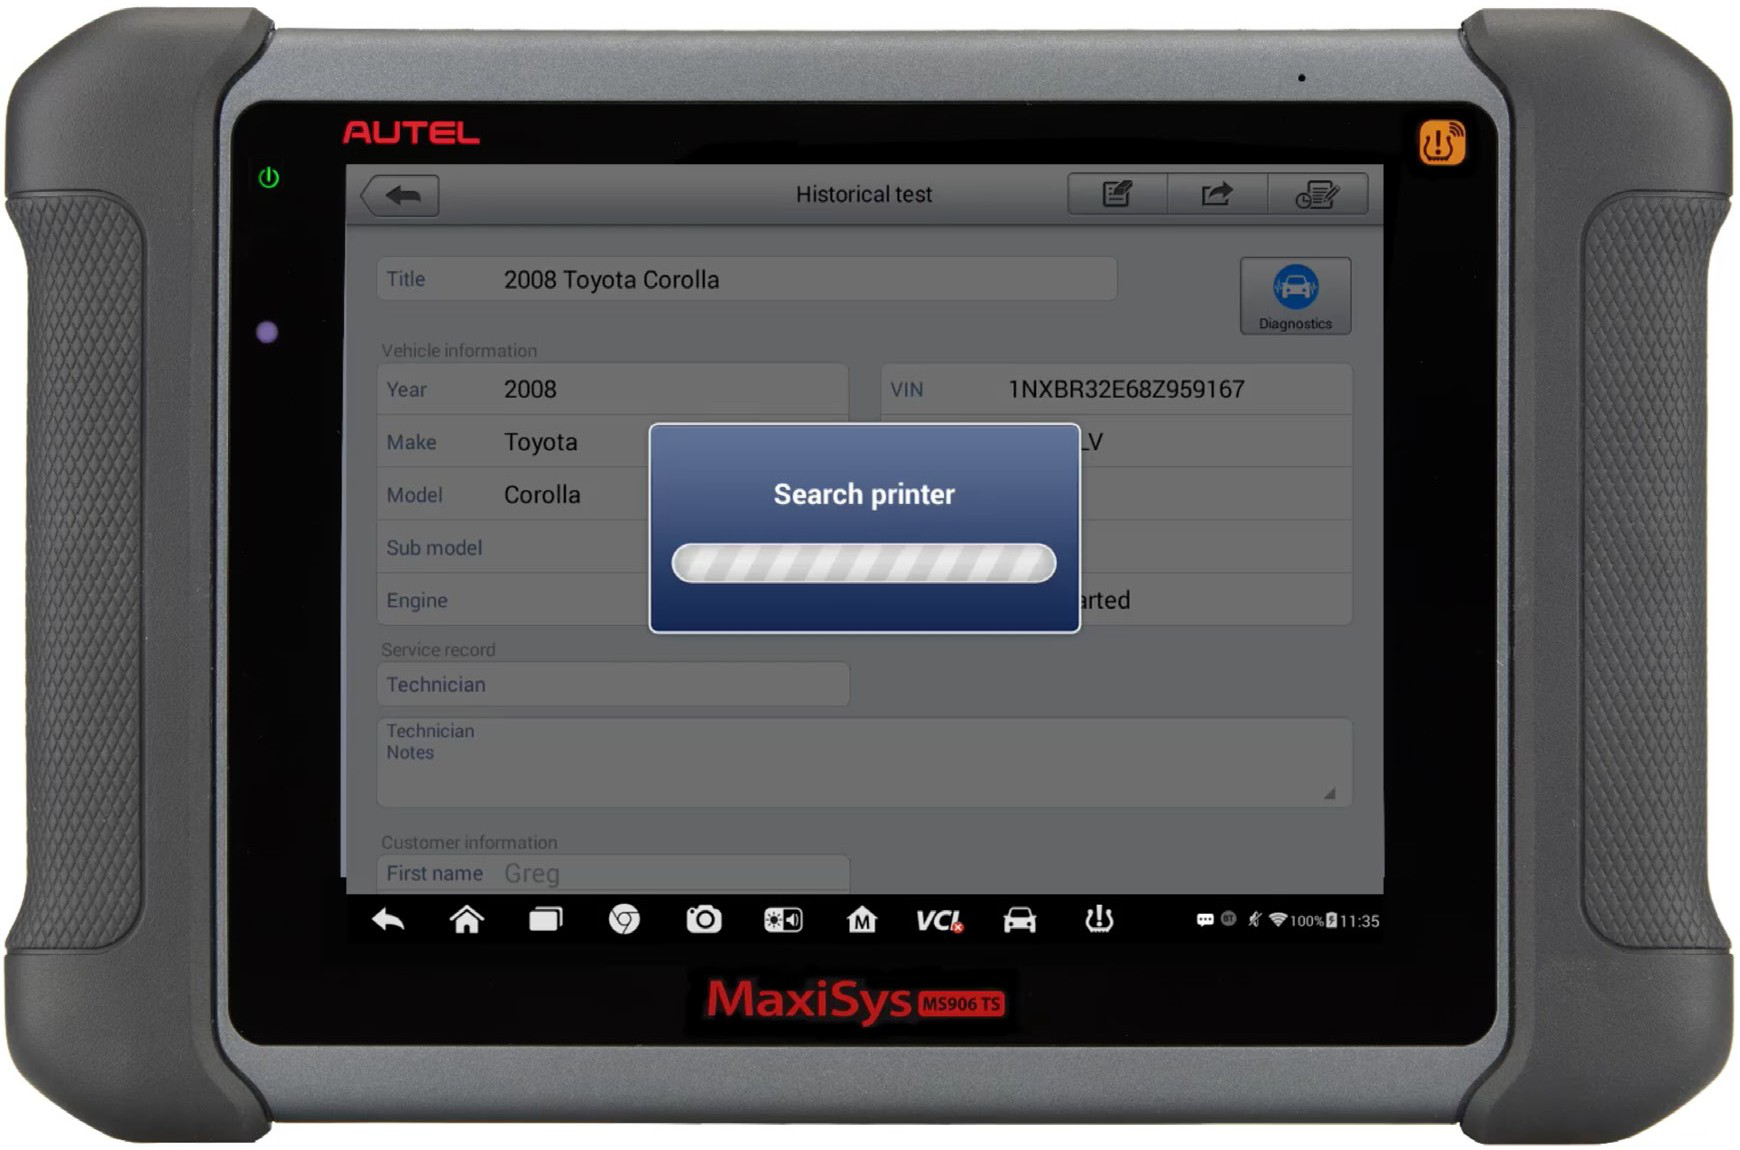 Autel-MaxiSYS-tablet-WIFI-PRINTING-Instruction-Guide-14